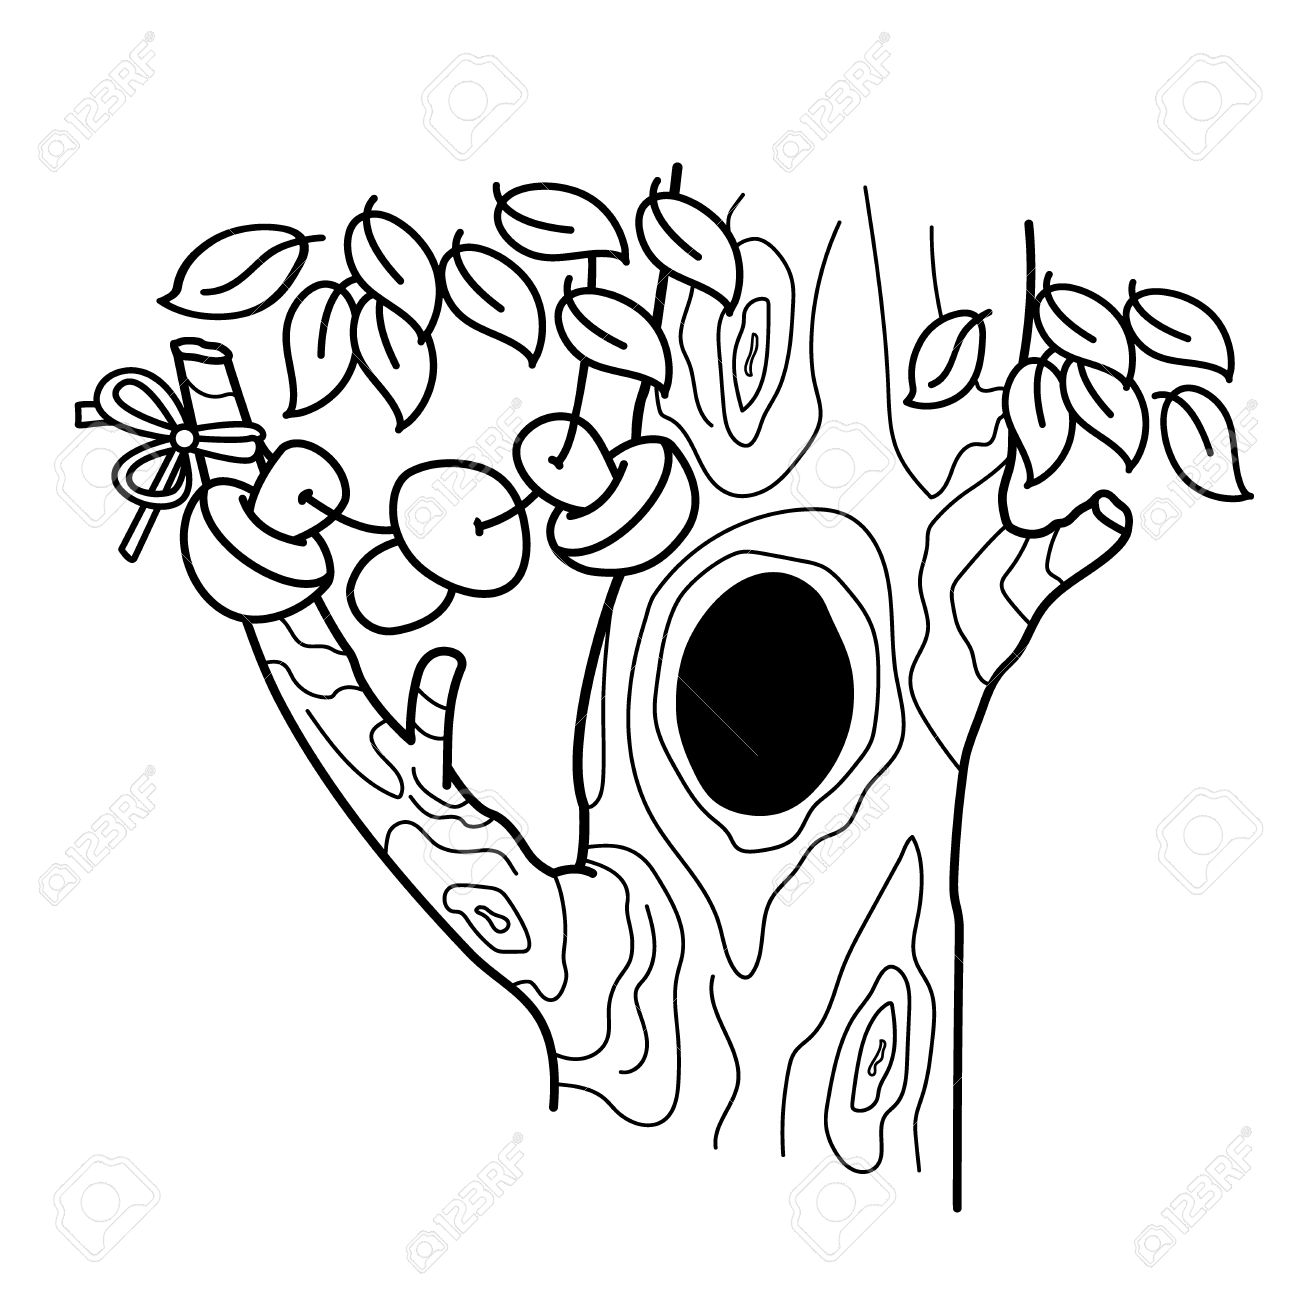 Coloring Page Outline Of Cartoon Tree With A Hollow Home Or Dwelling For Squirrels